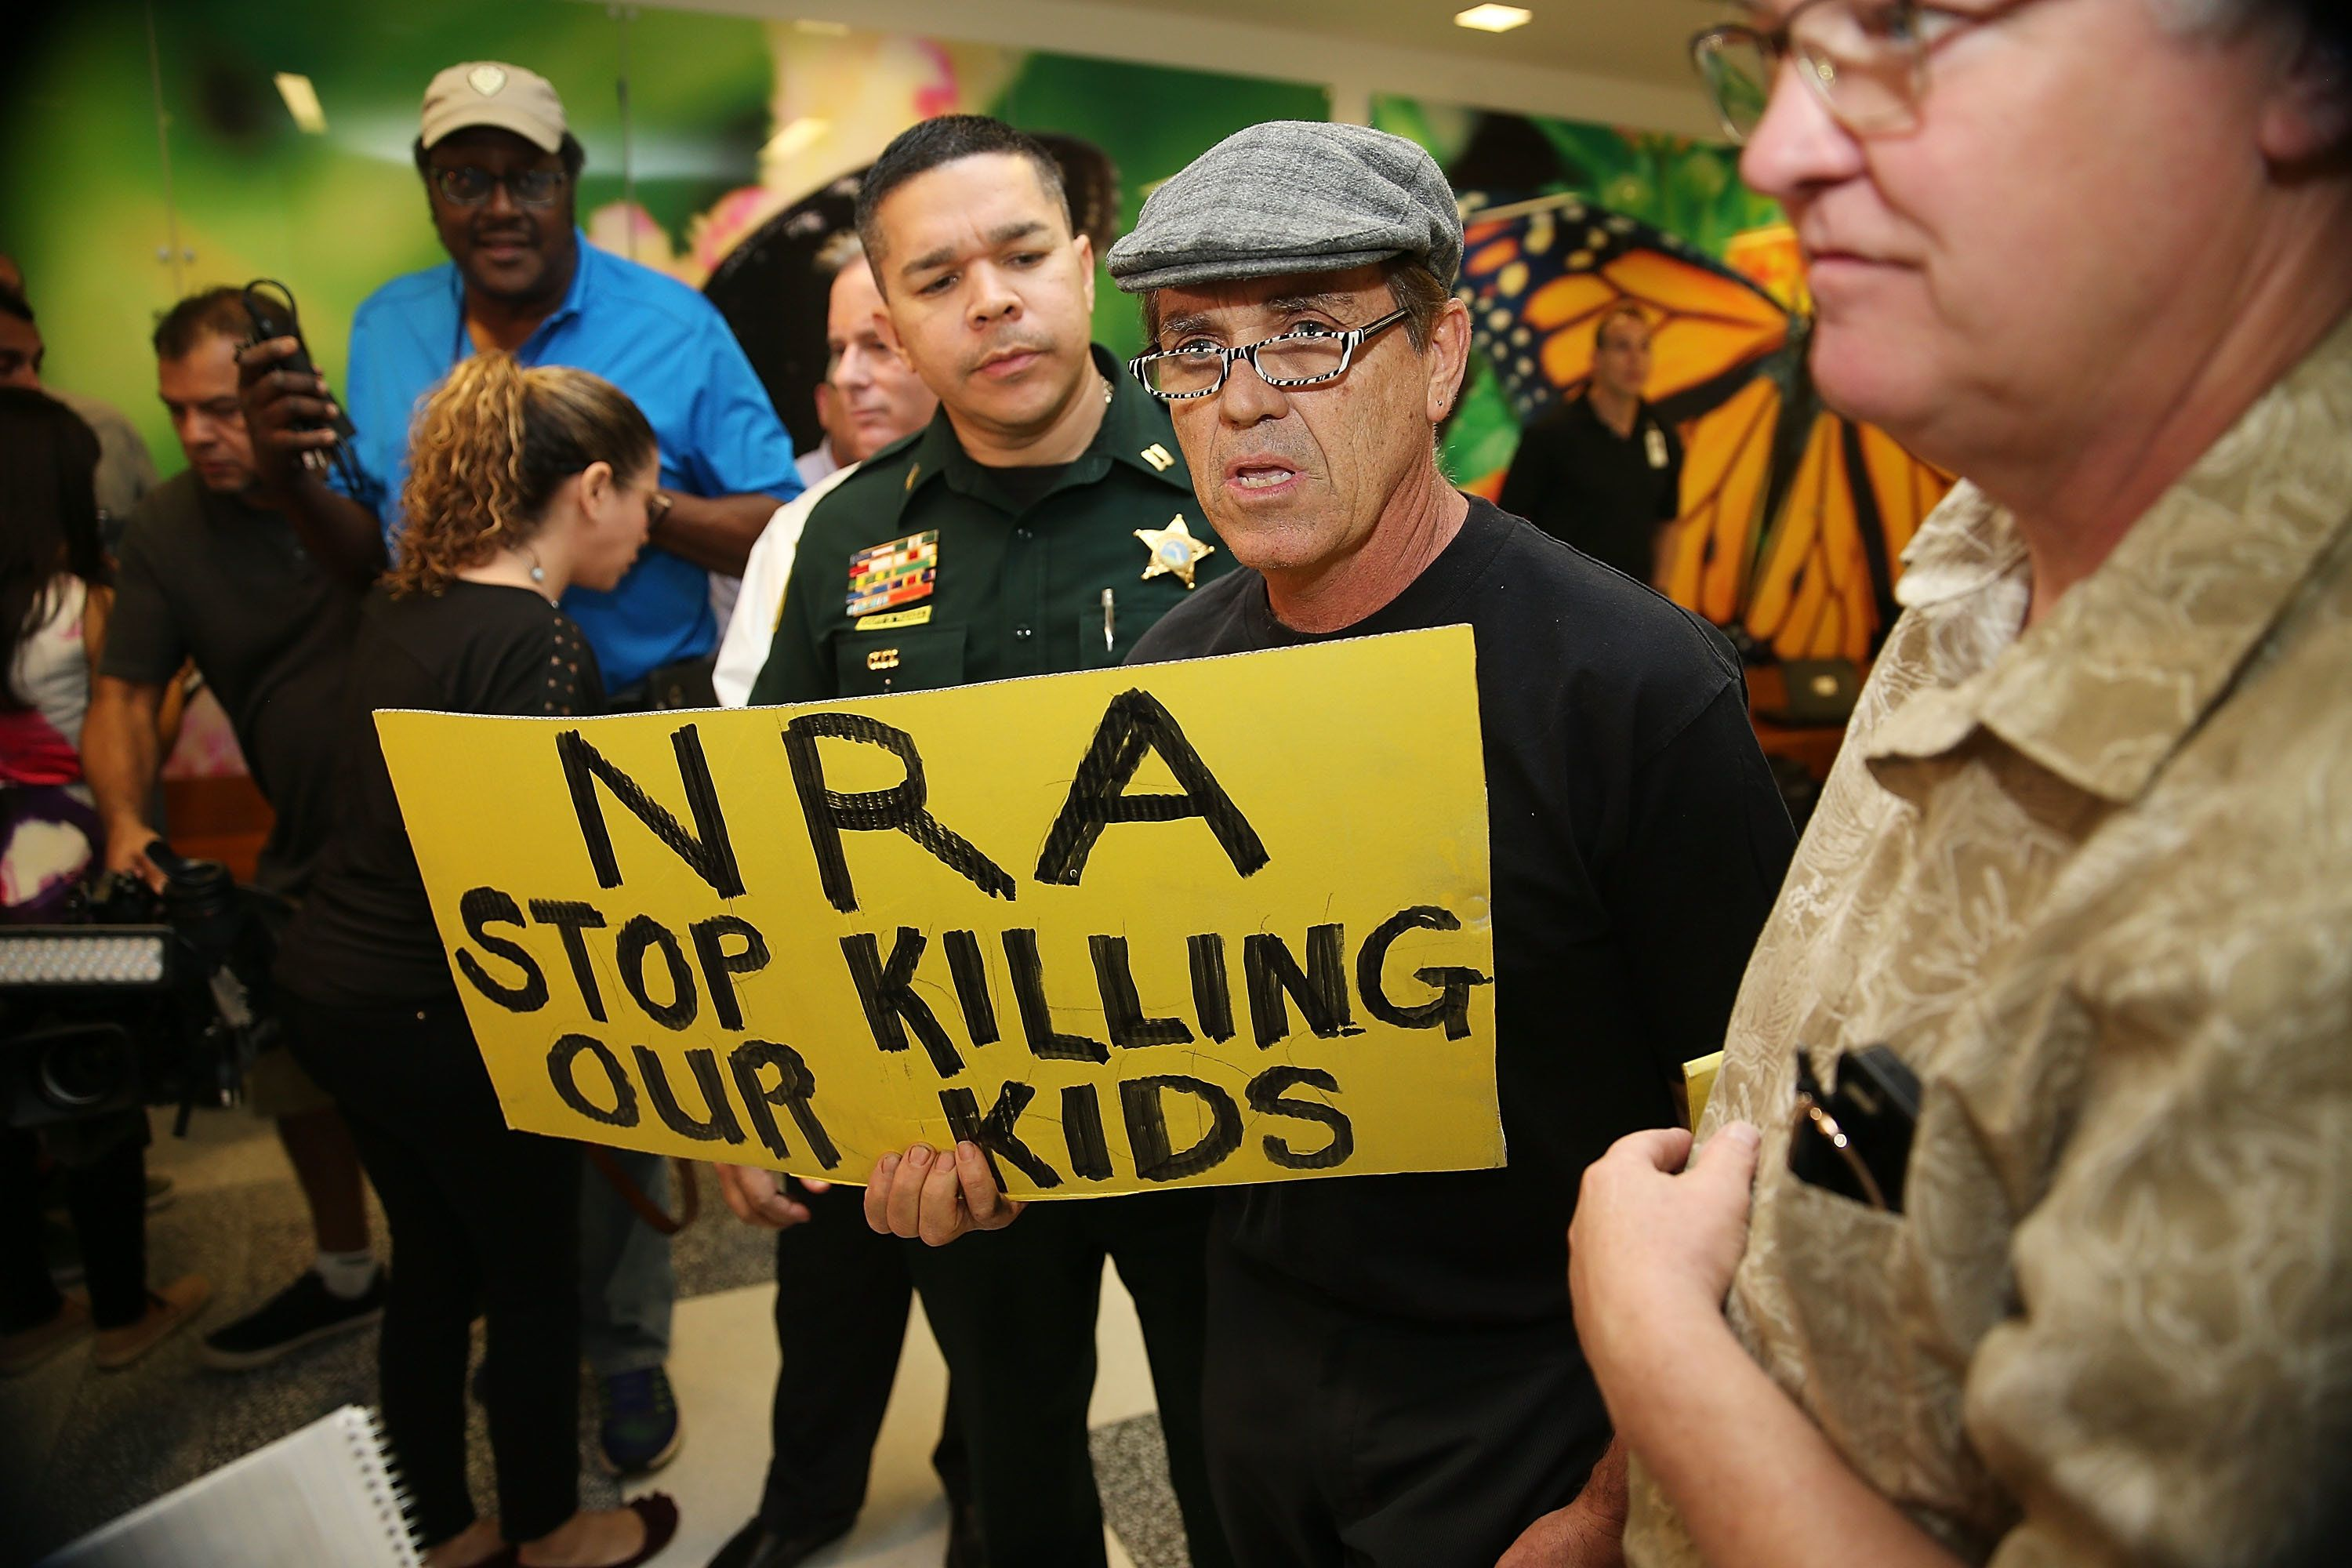 FORT LAUDERDALE, FL - FEBRUARY 15: A protester holds a sign that reads, 'NRA Stop Killing Our Kids', outside the court-room where Nikolas Cruz, 19, a former student at Marjory Stoneman Douglas High School in Parkland, Florida, was having a bond hearing in front of Broward Judge Kim Mollica at the Broward County Courthouse on February 15, 2018 in Fort Lauderdale, Florida. Mr. Cruz is possibly facing 17 counts of premeditated murder in the school shooting.  (Photo by Charles Trainor Jr. - Pool/Getty Images)